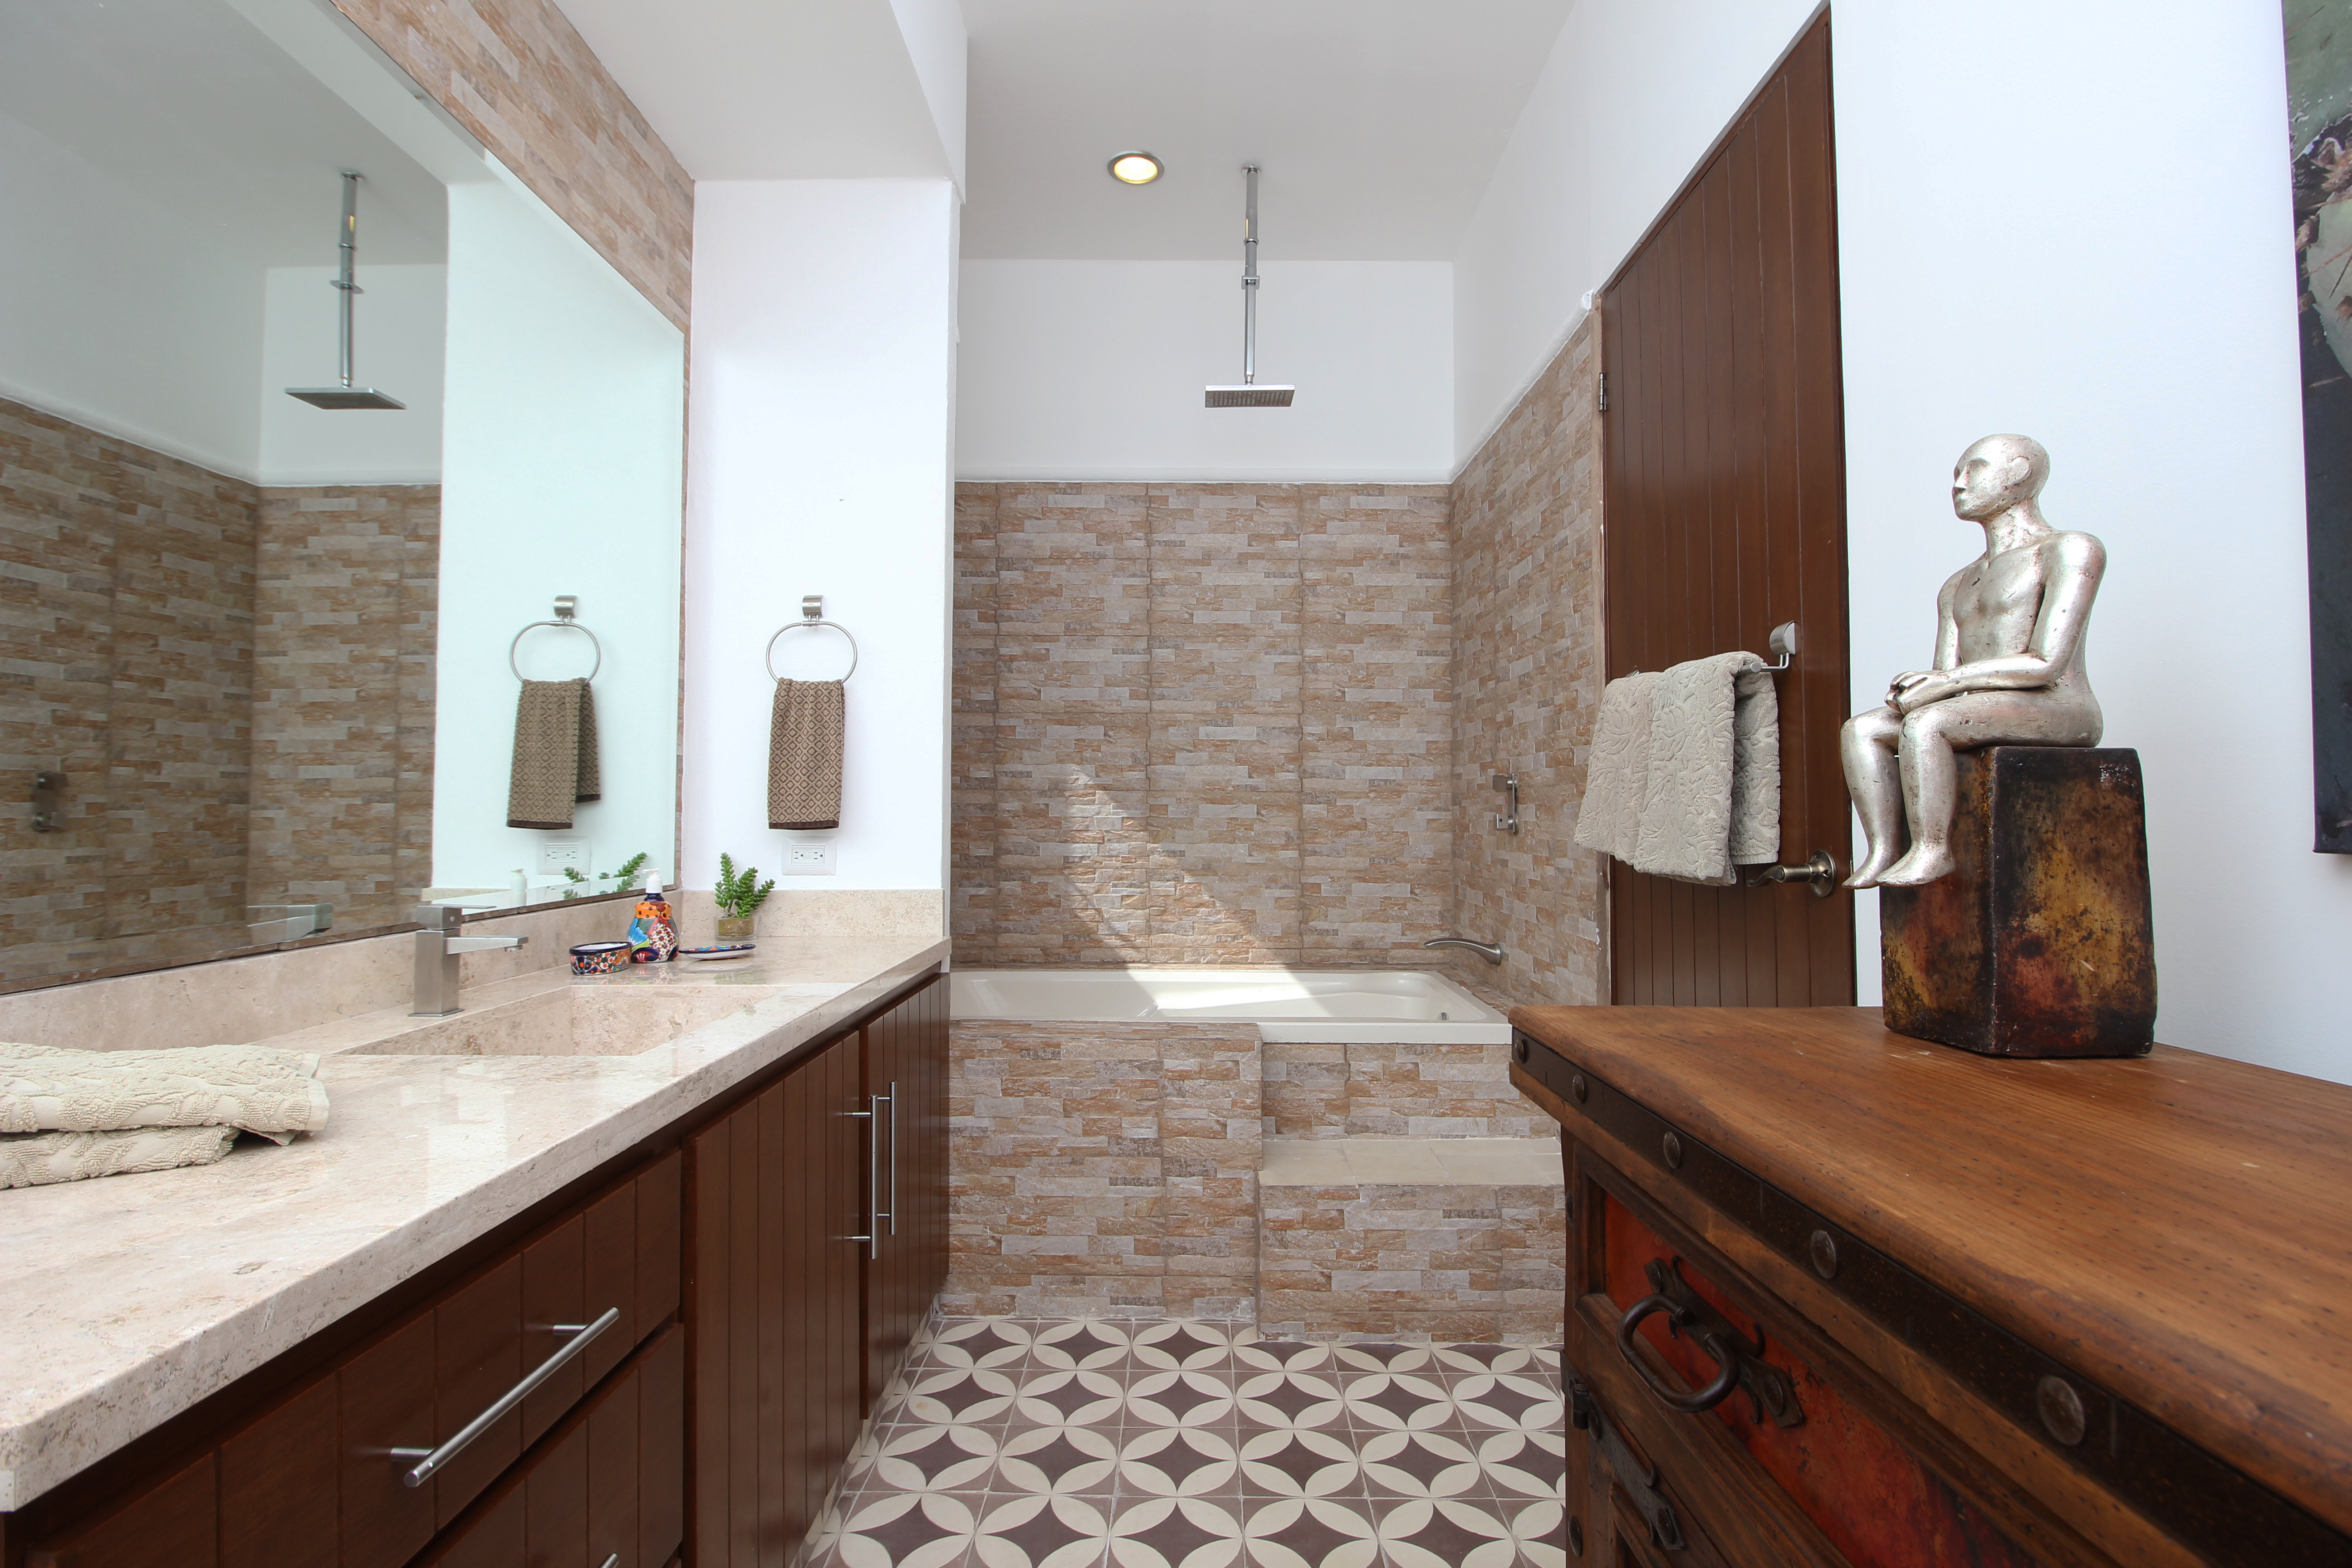 Apartment ensuite with bath tub and shower.